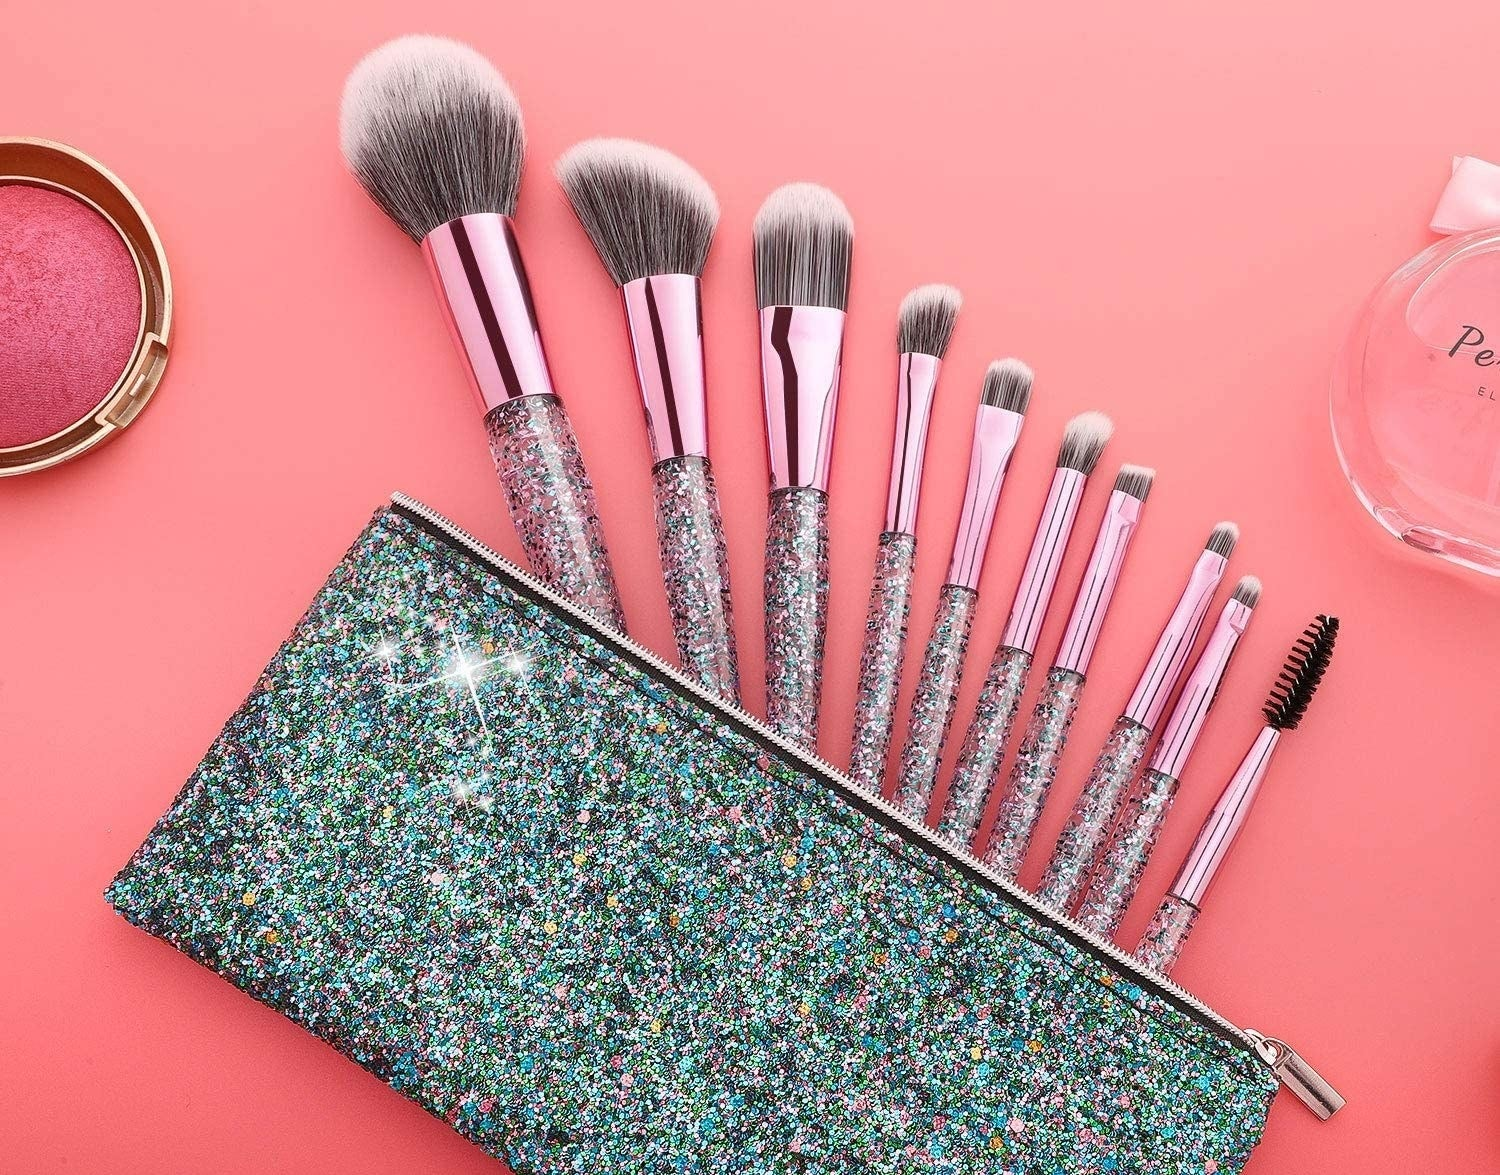 Nine makeup brushes with sparkly handles in a sparkly makeup bag